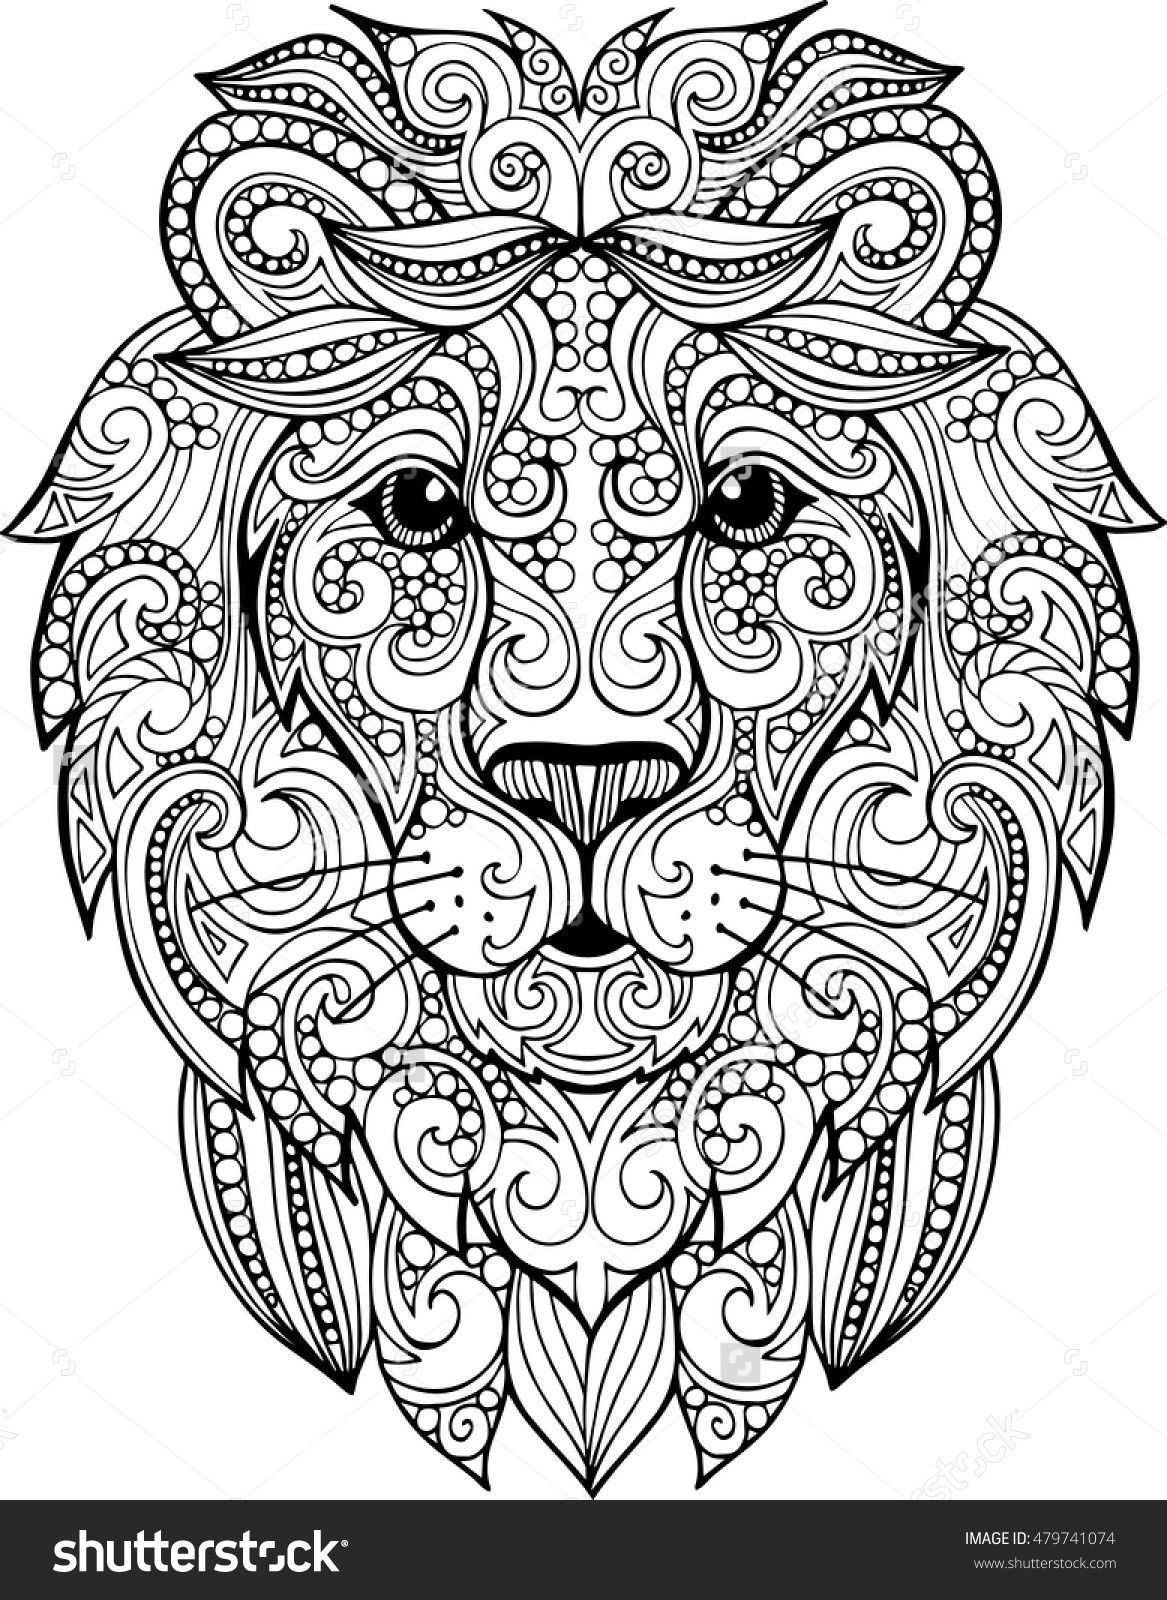 Colouring Page Colouring Pages Pinterest Coloring Pages - Lion-mandala-coloring-pages